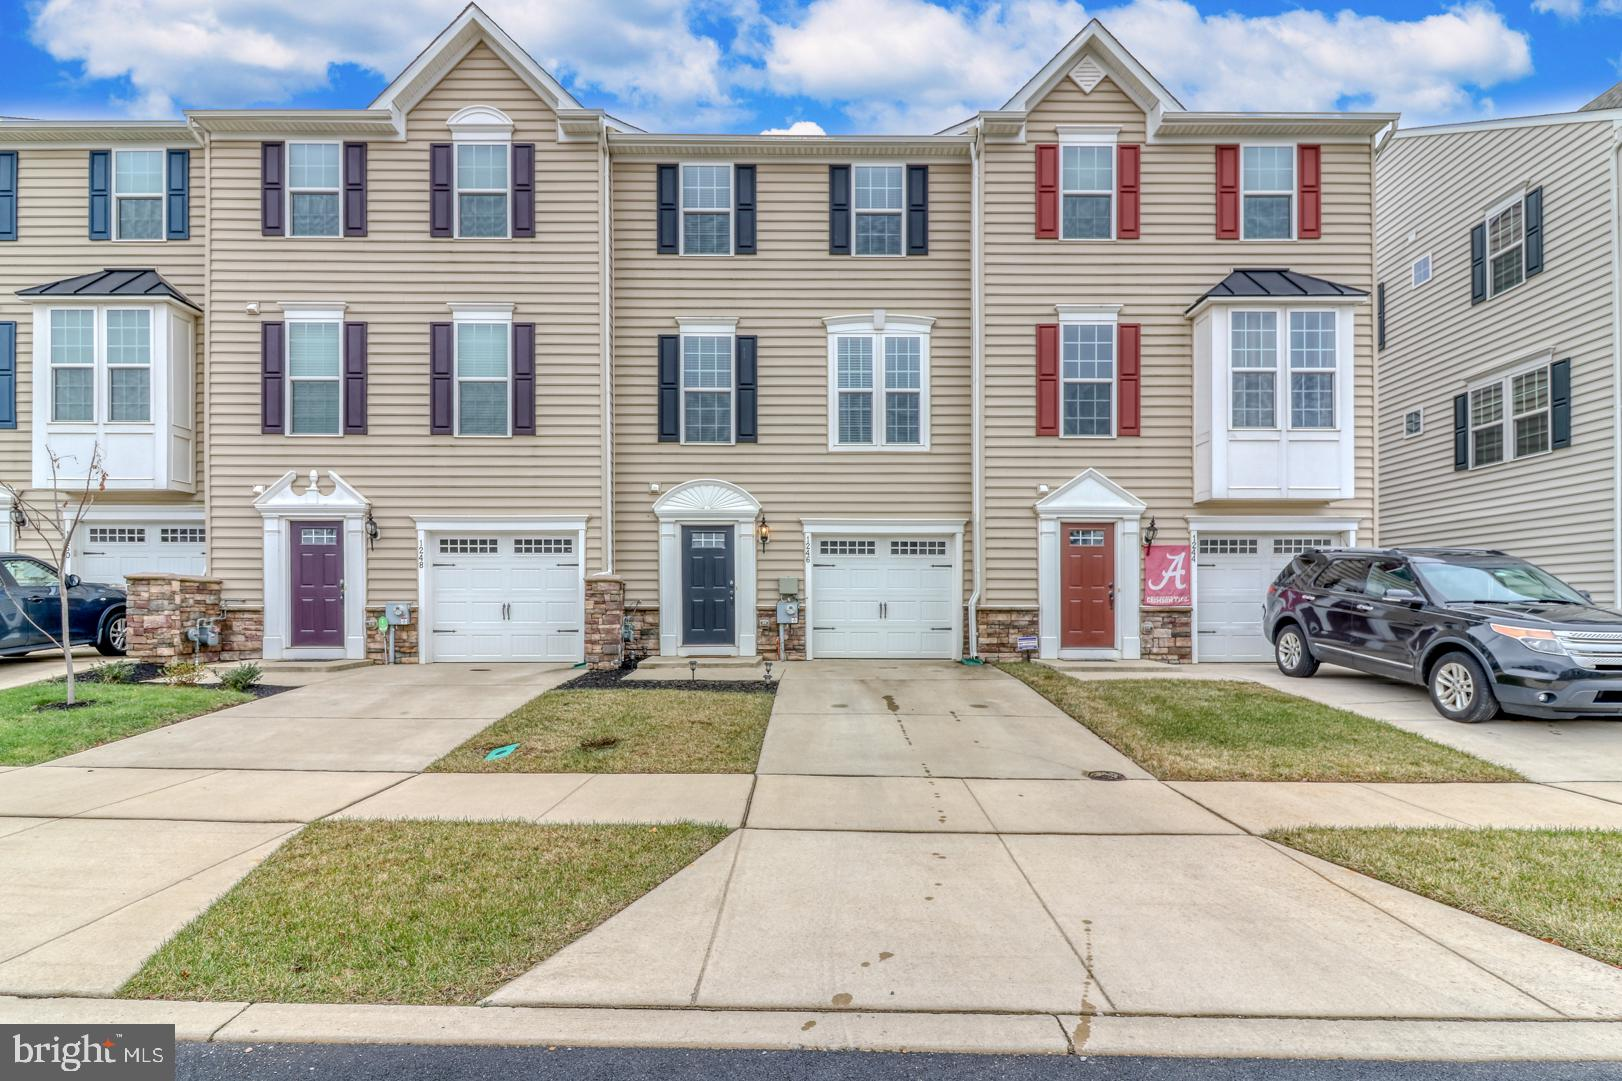 Fantastic opportunity to own an almost new three bedroom, two and a half townhome in desirable High Hook Farms. This home offers a completely neutral palette allowing you to move right in and put your personal touch and taste on every room! While located in Appoquinimink School District, enjoy the premium East Middletown location offering easy  access to Rt. 1 and 13.  Every level of this home offers spacious living space including the first level with interior access to the one-car garage, a powder room, a large media room or potential bedroom with French door to the back yard and large storage closets. Make your way to the main level with an upgraded and modern eat-in kitchen featuring upgraded 42 inch cabinets, granite countertops, an eat-up breakfast bar open to the family room, a large center island and stainless steel appliances. French doors lead to an over-sized maintenance free composite deck ideal for your summer BBQ's. The family room is wide open, filled with natural light and the perfect space for entertaining. Head upstairs to the third level where you will find a large master bedroom with stunning tray ceiling, a generous walk in closet and master bathroom with a double sink vanity, tile flooring and ceramic tile shower surround which was an option during the build process. This level also consists of two additional bedrooms and hall bathroom. Laundry is a breeze with a convenient upper level washer/dryer. All appliances are included! This home is energy efficient and move-in ready. Schedule a tour today!